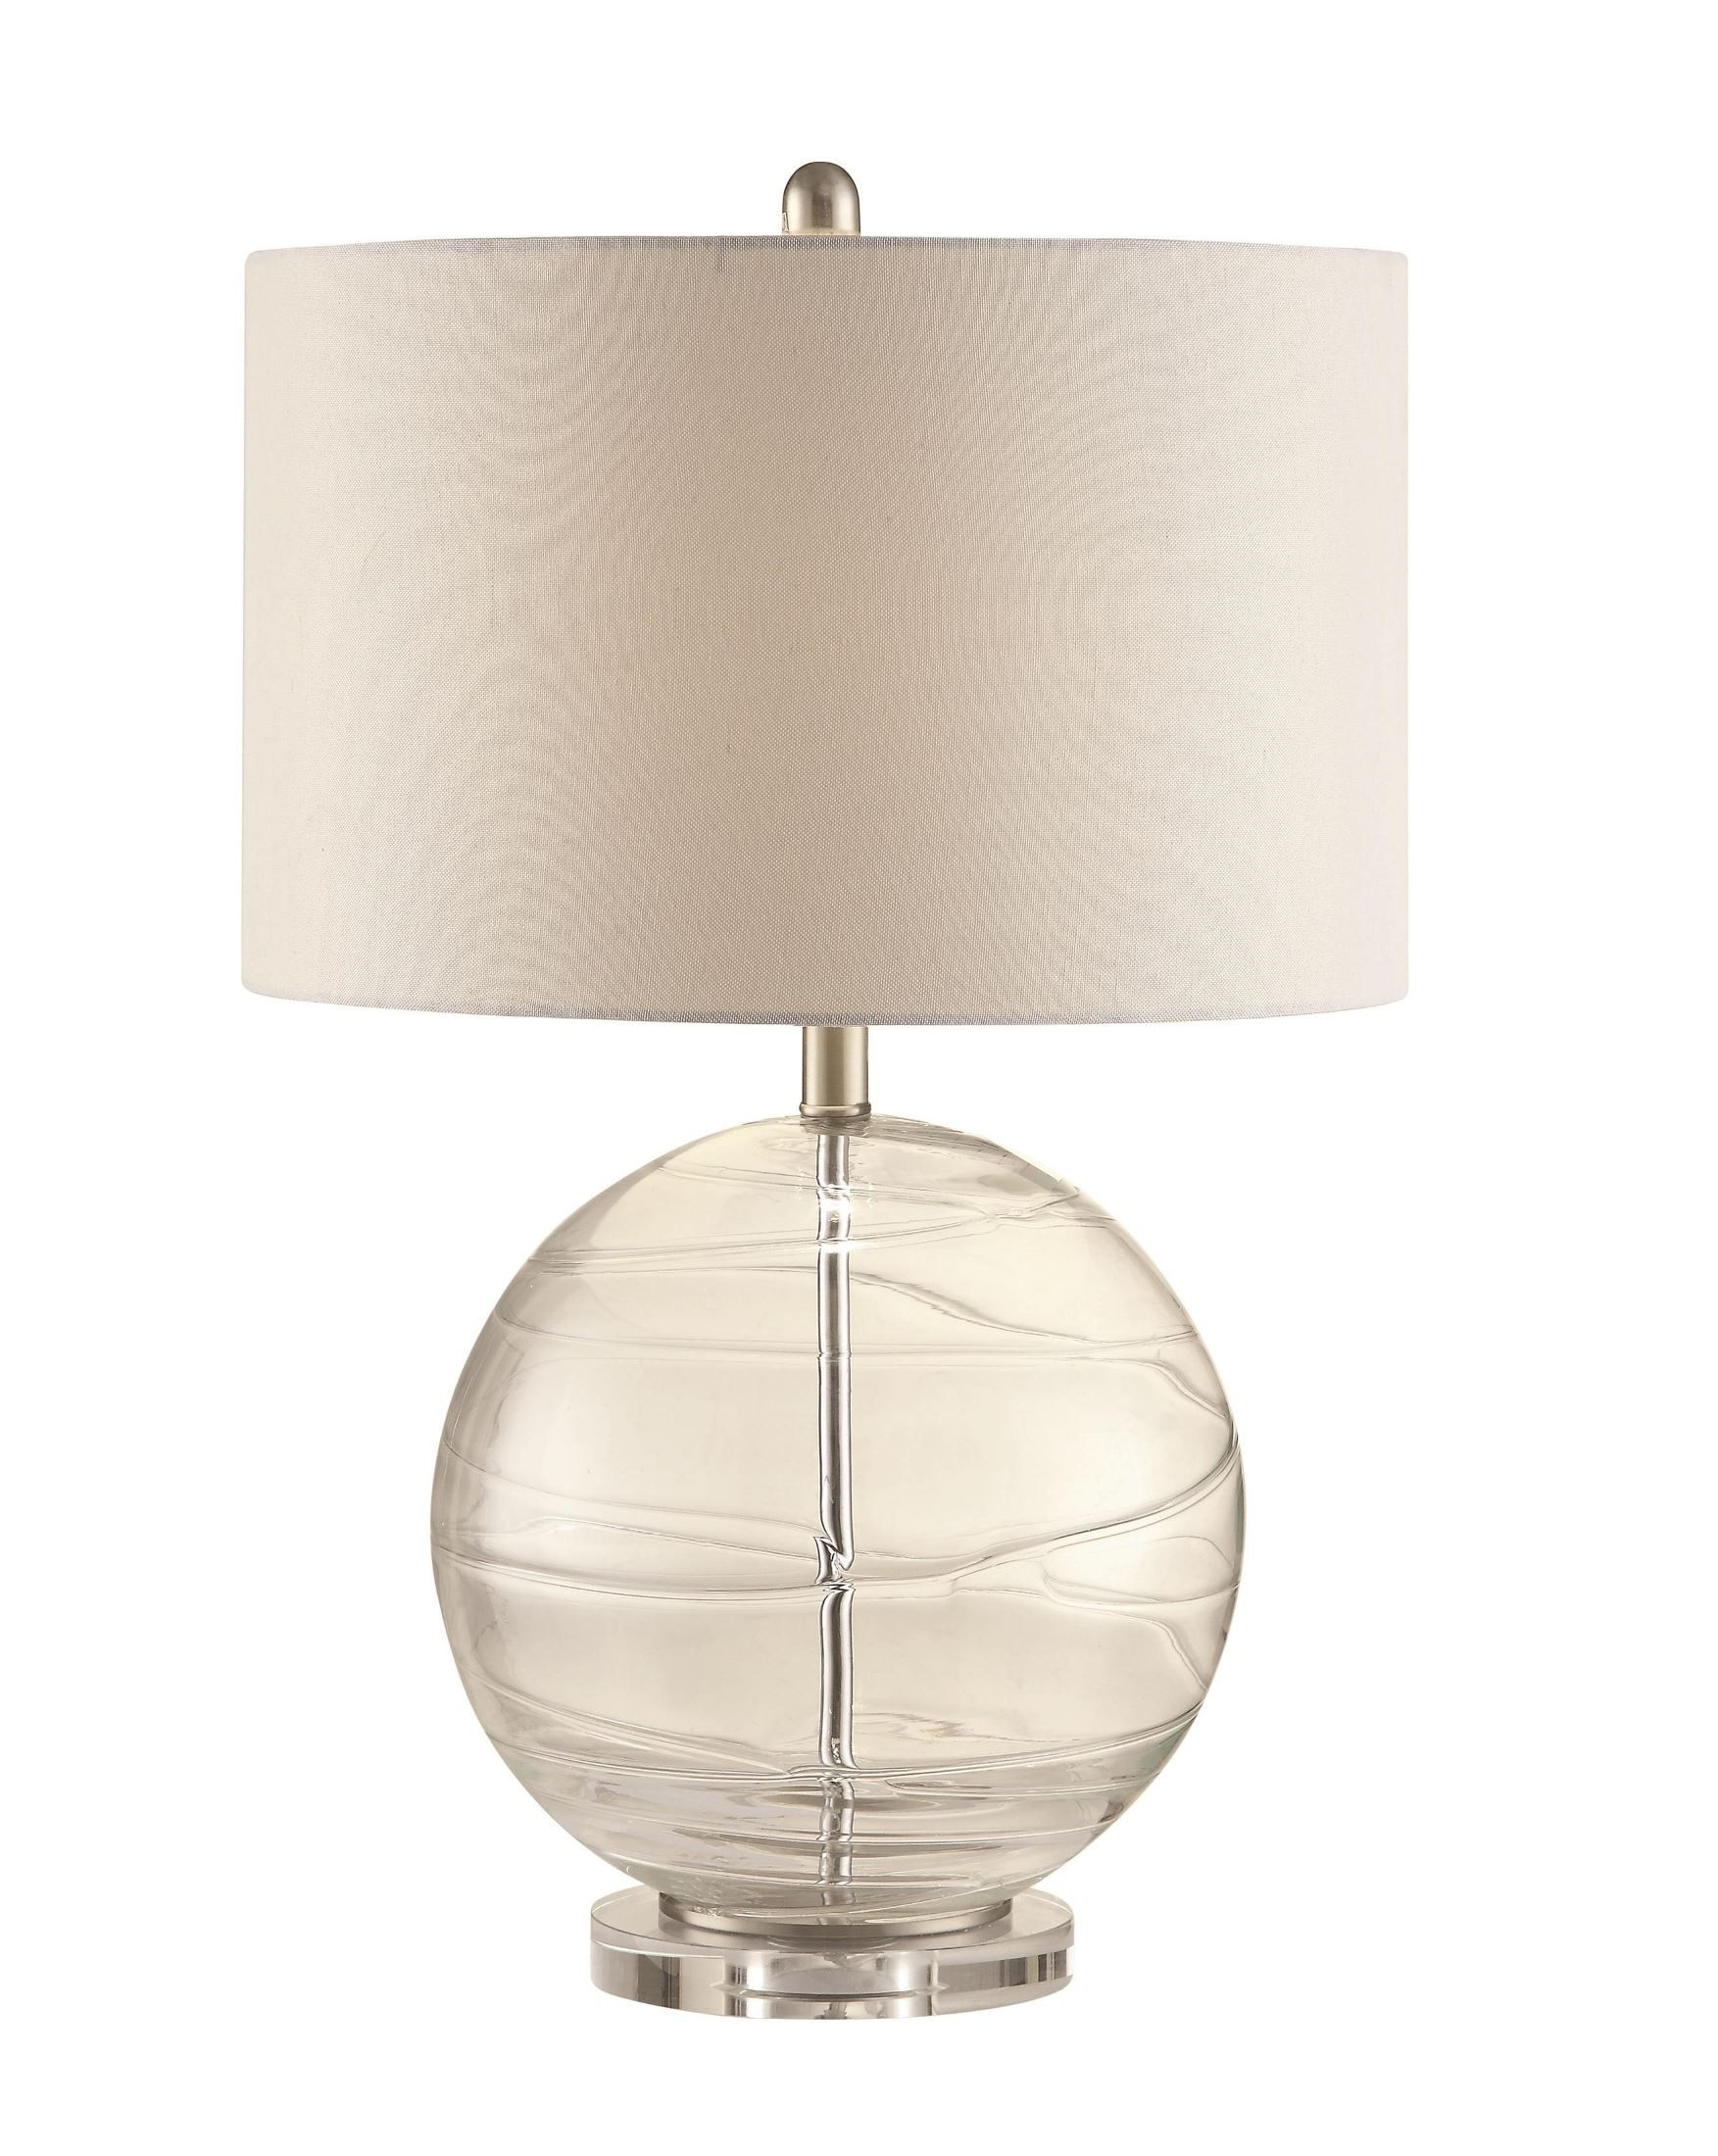 901557 clear glass globe table lamp from coaster 901557 coleman. Black Bedroom Furniture Sets. Home Design Ideas